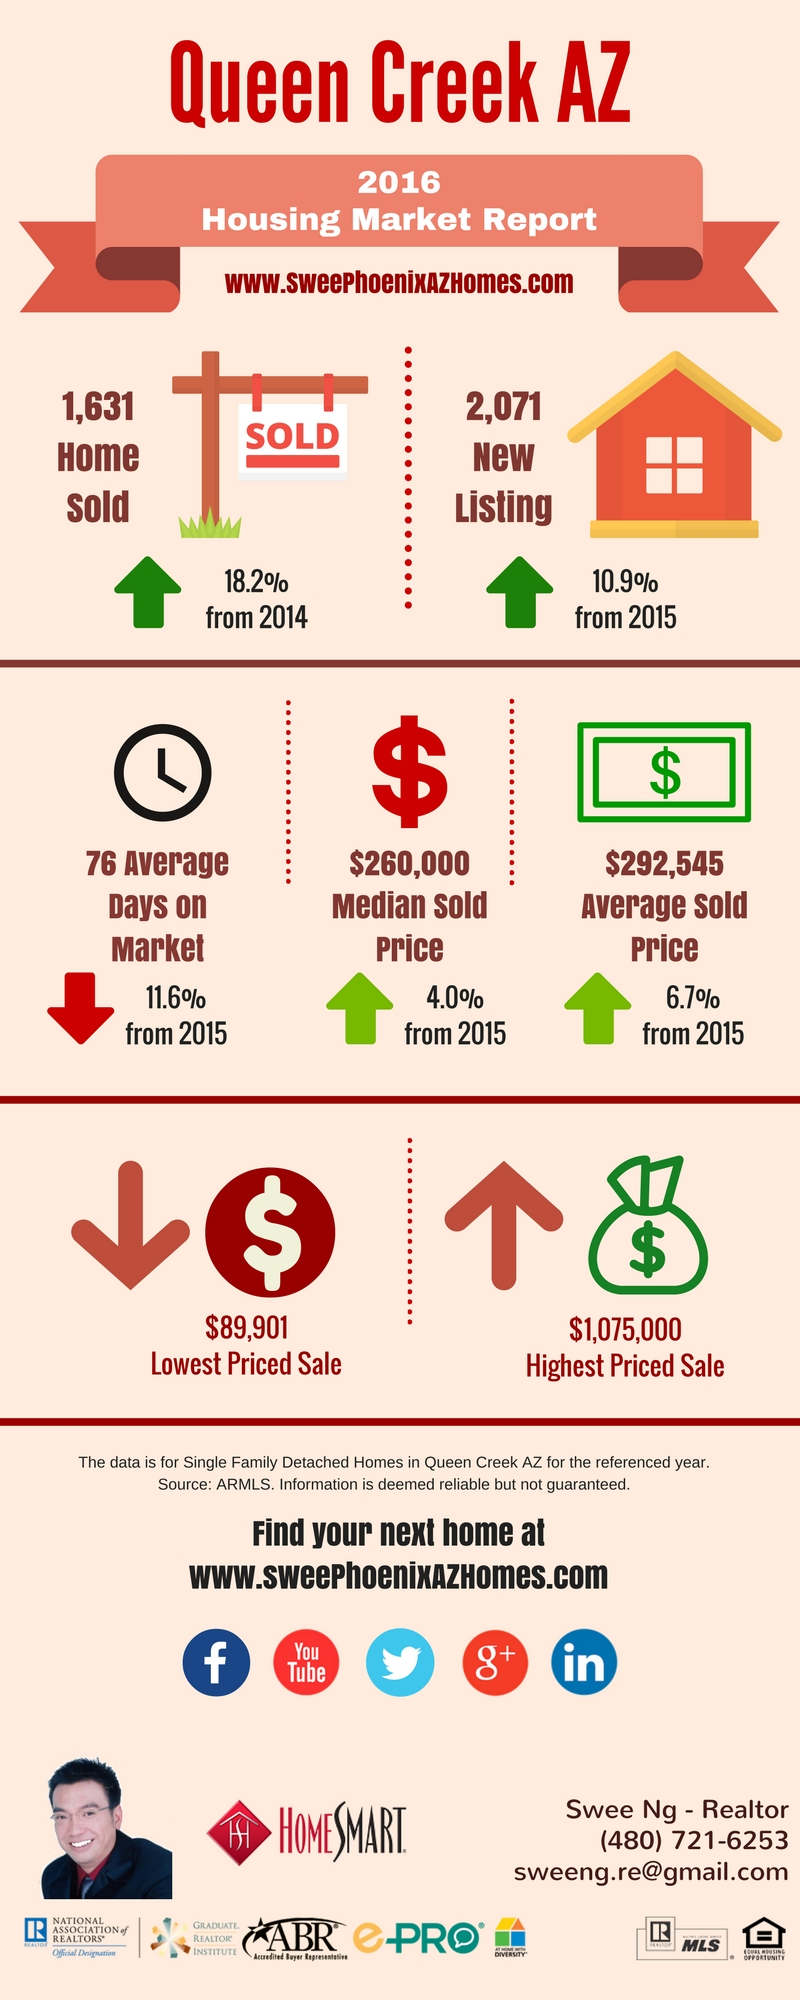 2016 Queen Creek AZ Housing Market Trends Report, Statistics and Home Price by Swee Ng